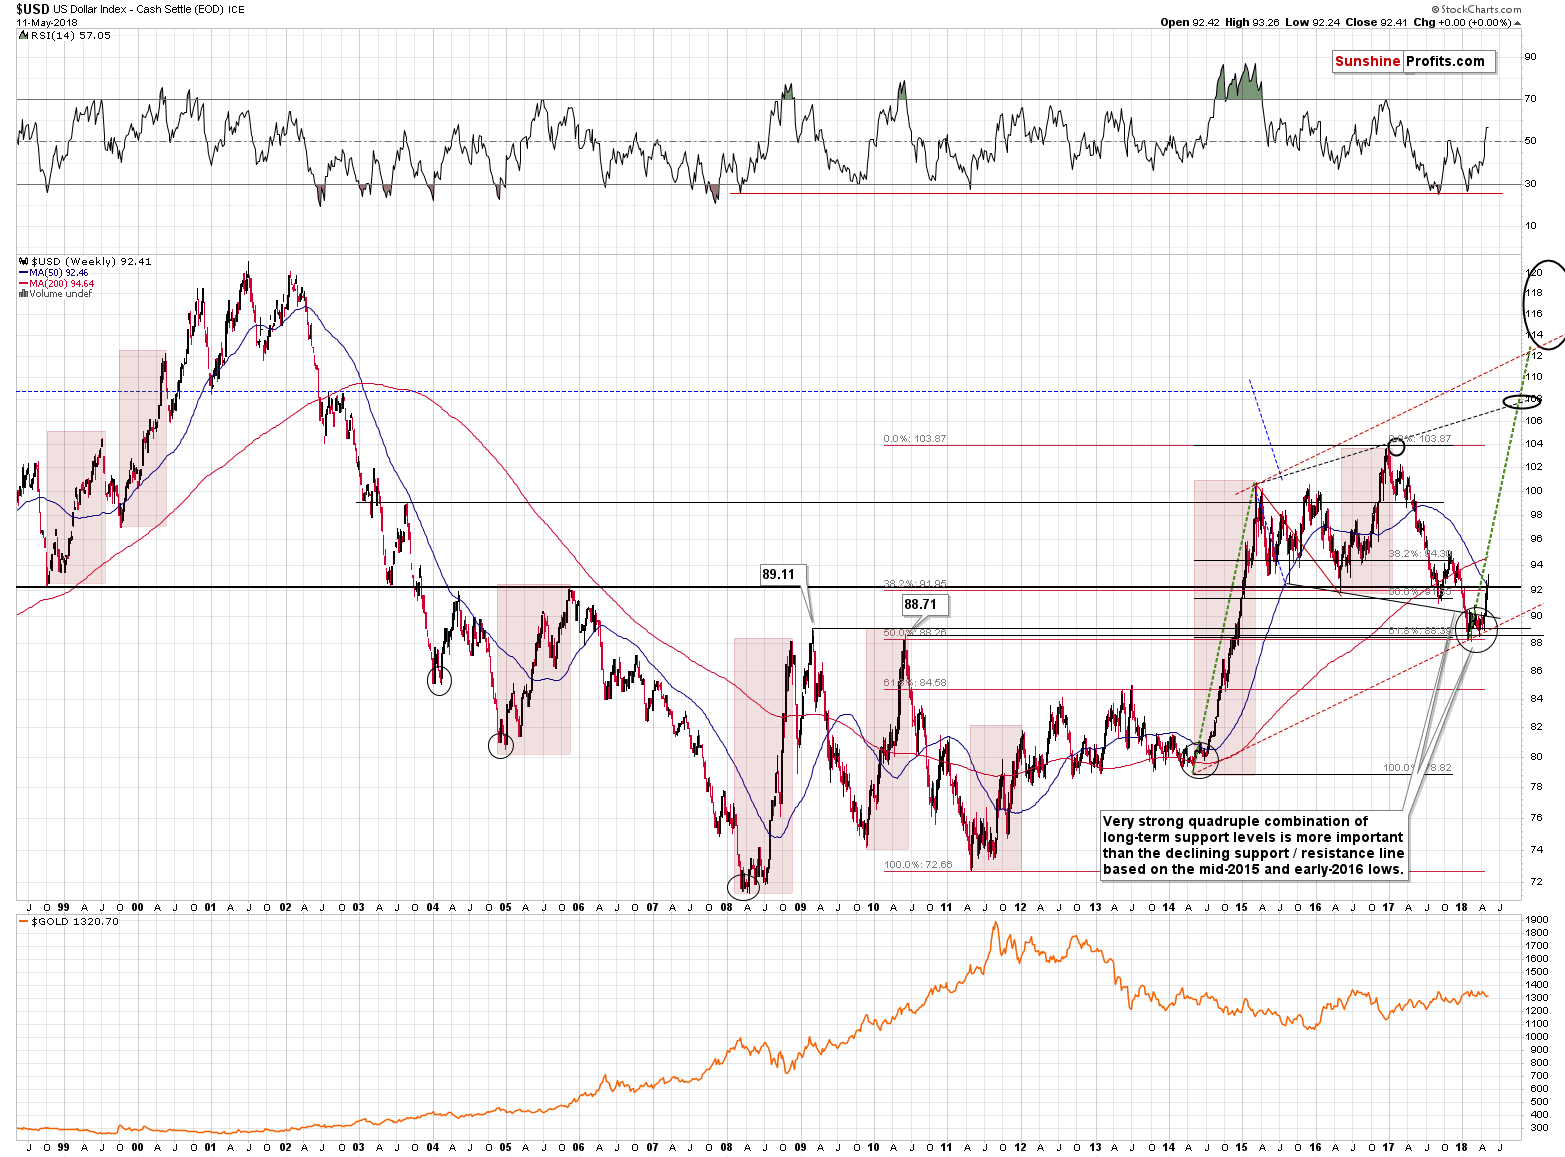 Gold and US Dollar - weekly price chart - USD